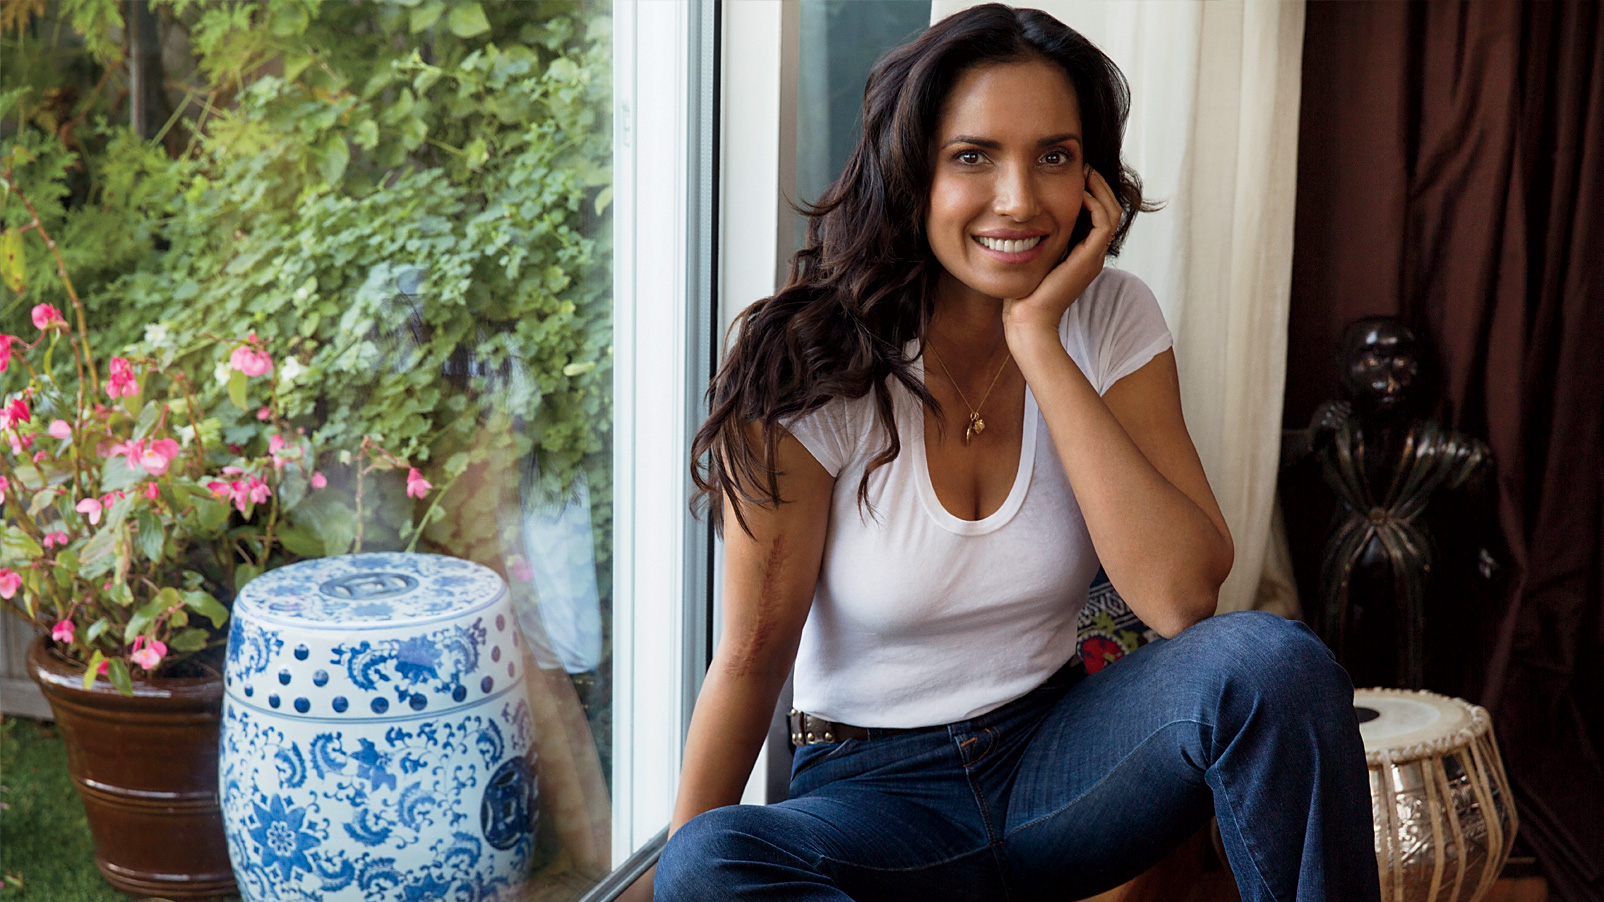 Padma Lakshmi's Thanksgiving Dinner Must-Have and Crispy Fried Chicken Trick